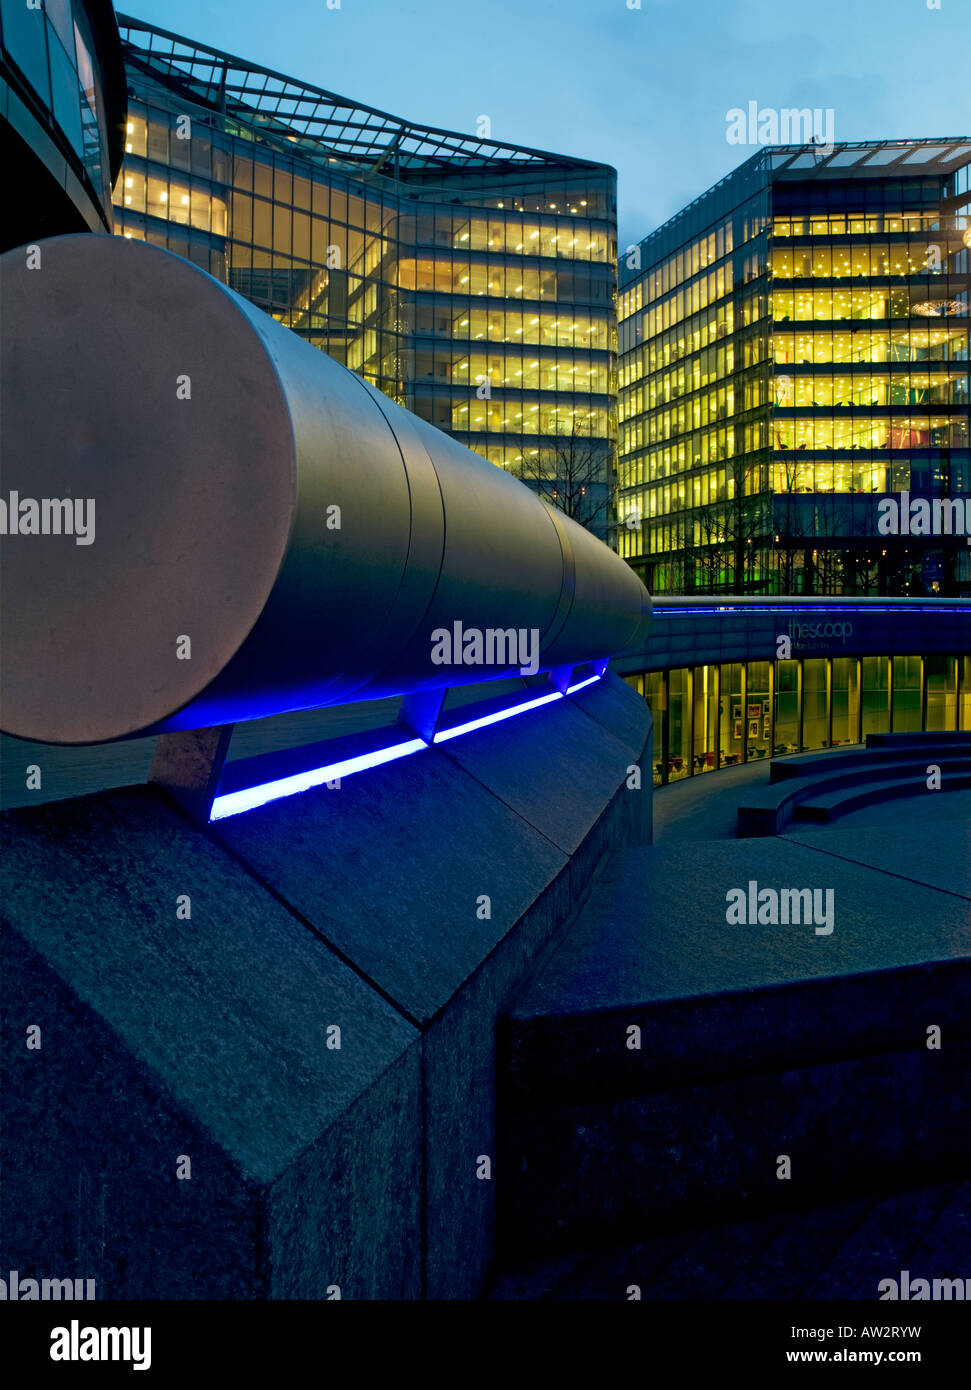 cylindrical handrail beside London City Hall, England, UK - Stock Image